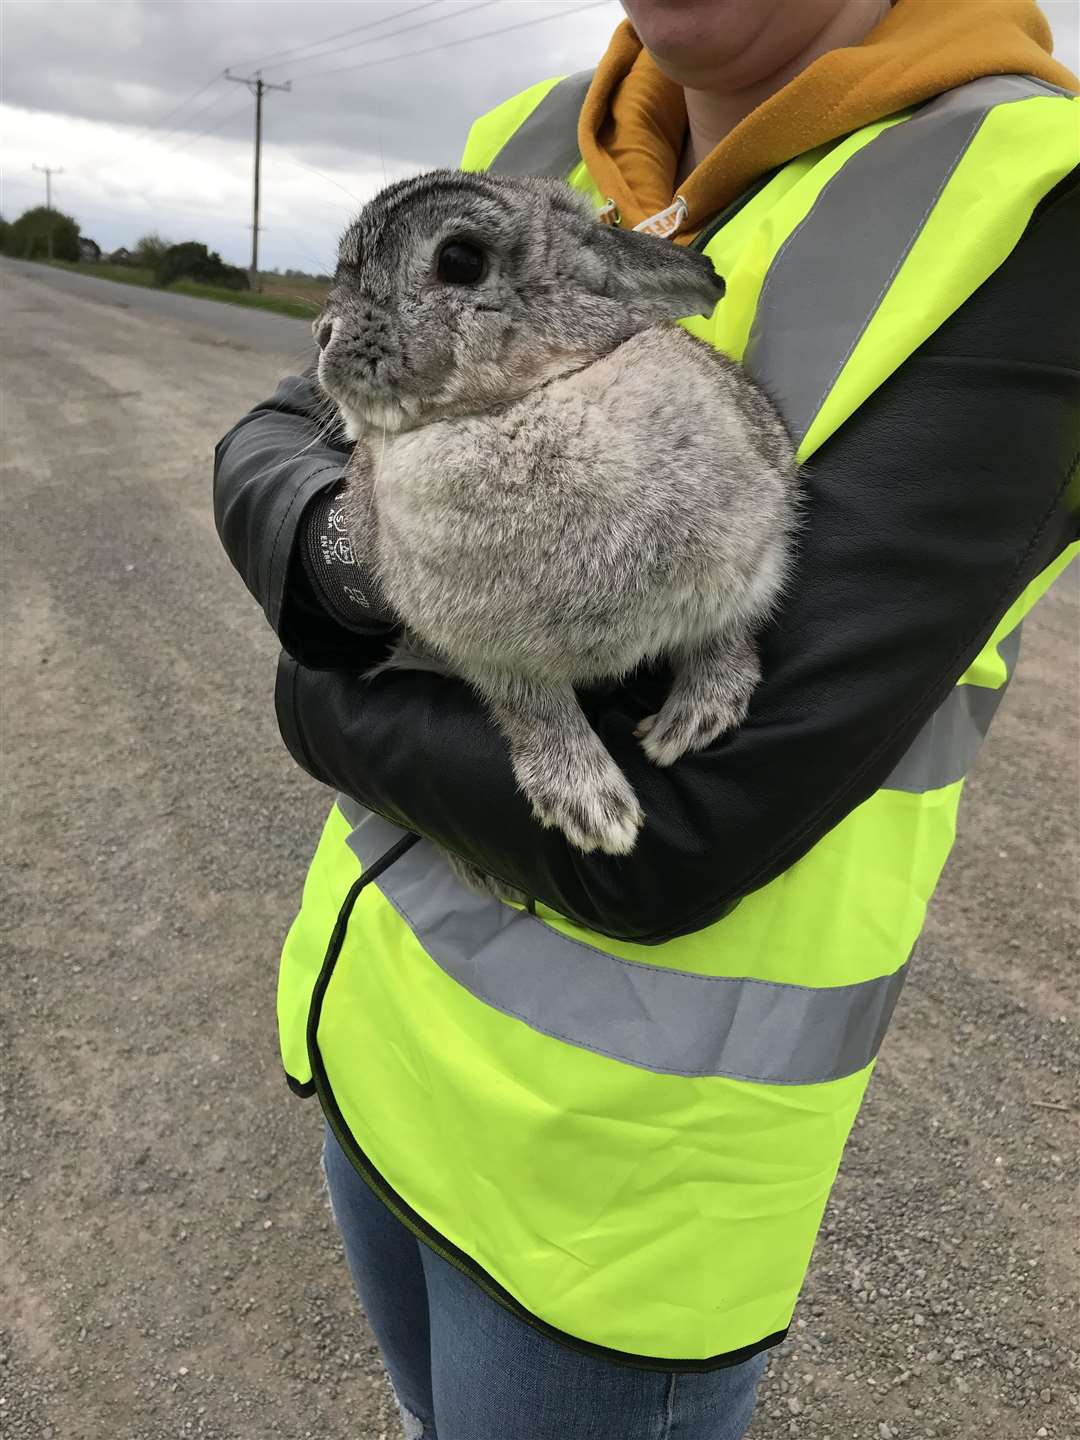 The rabbit found living among rubbish by litter pickers (19258026)